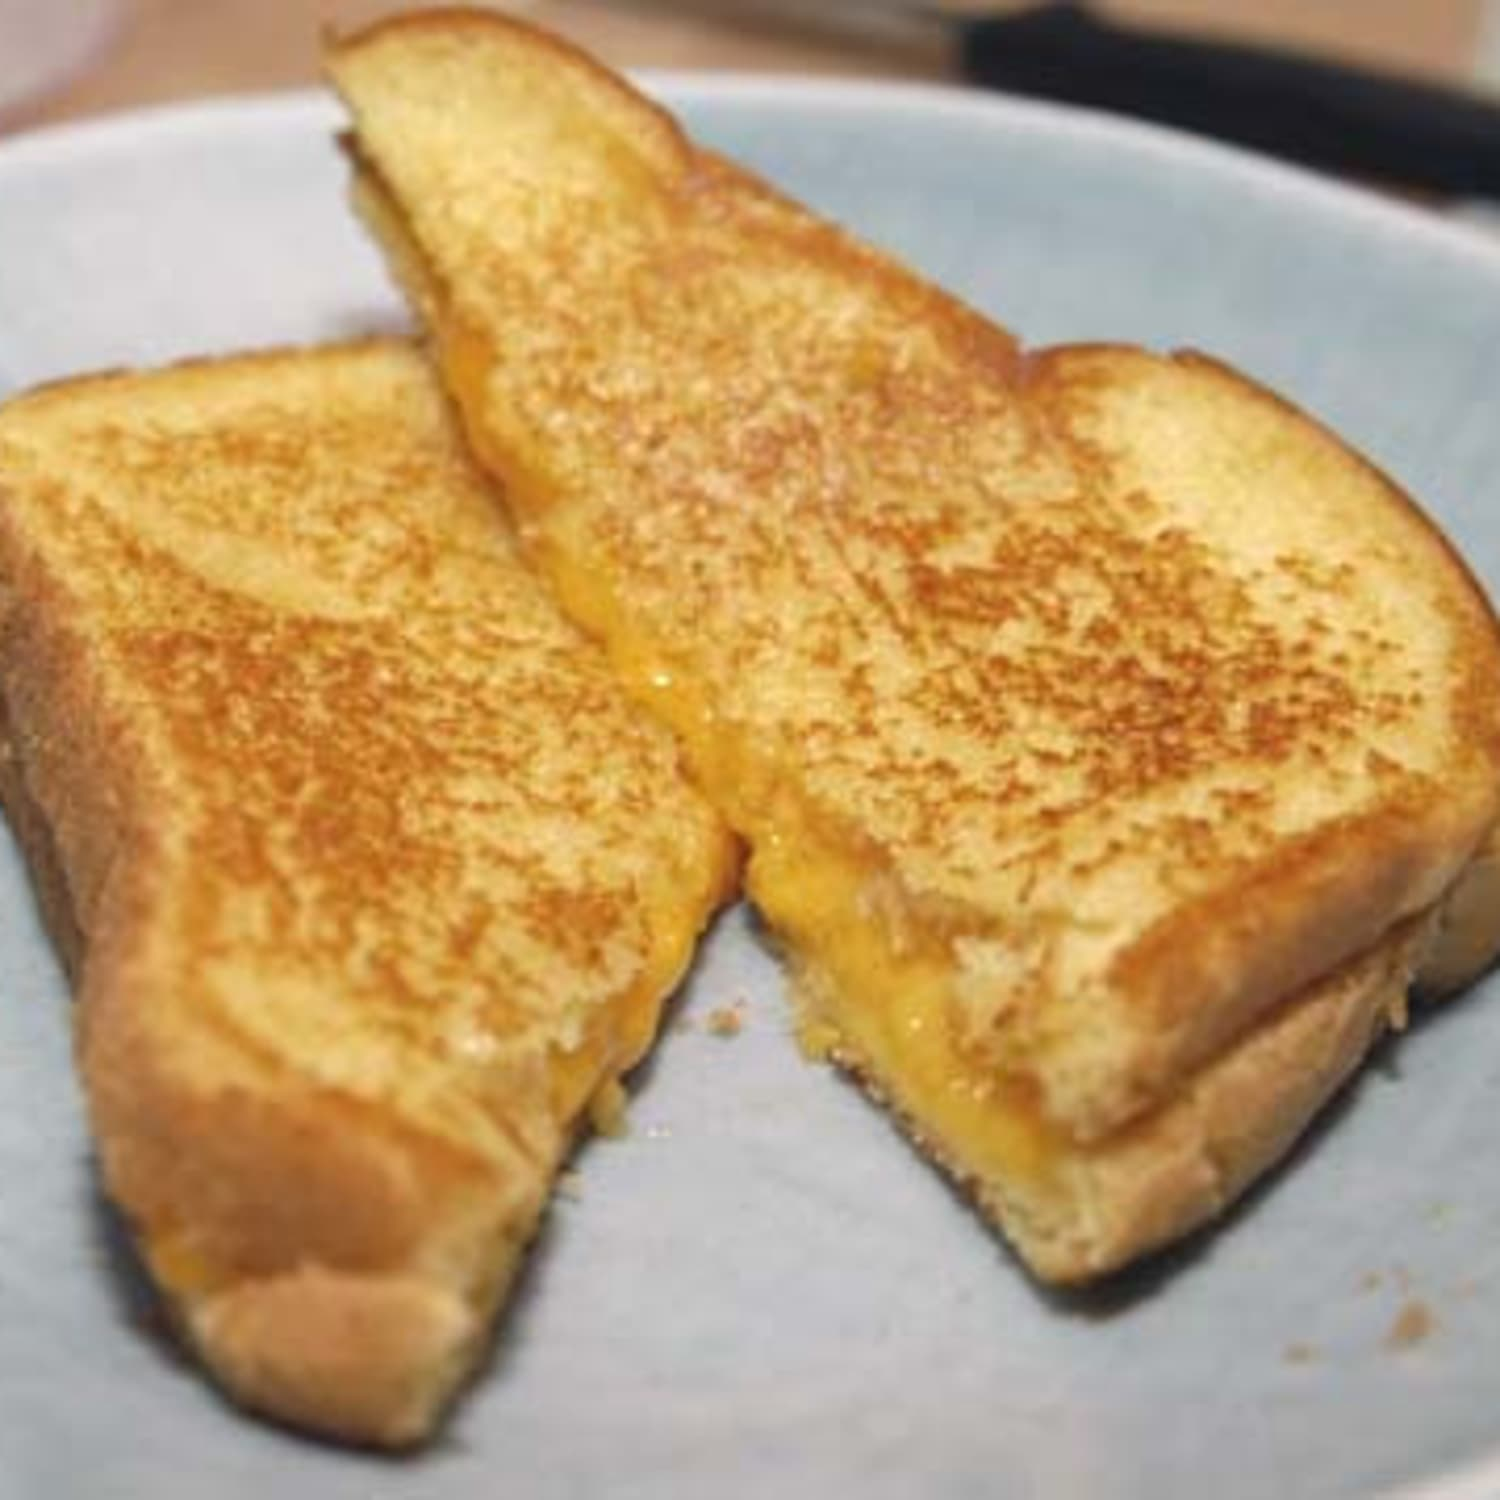 How to Make a Grilled Cheese Sandwich | Apartment Therapy